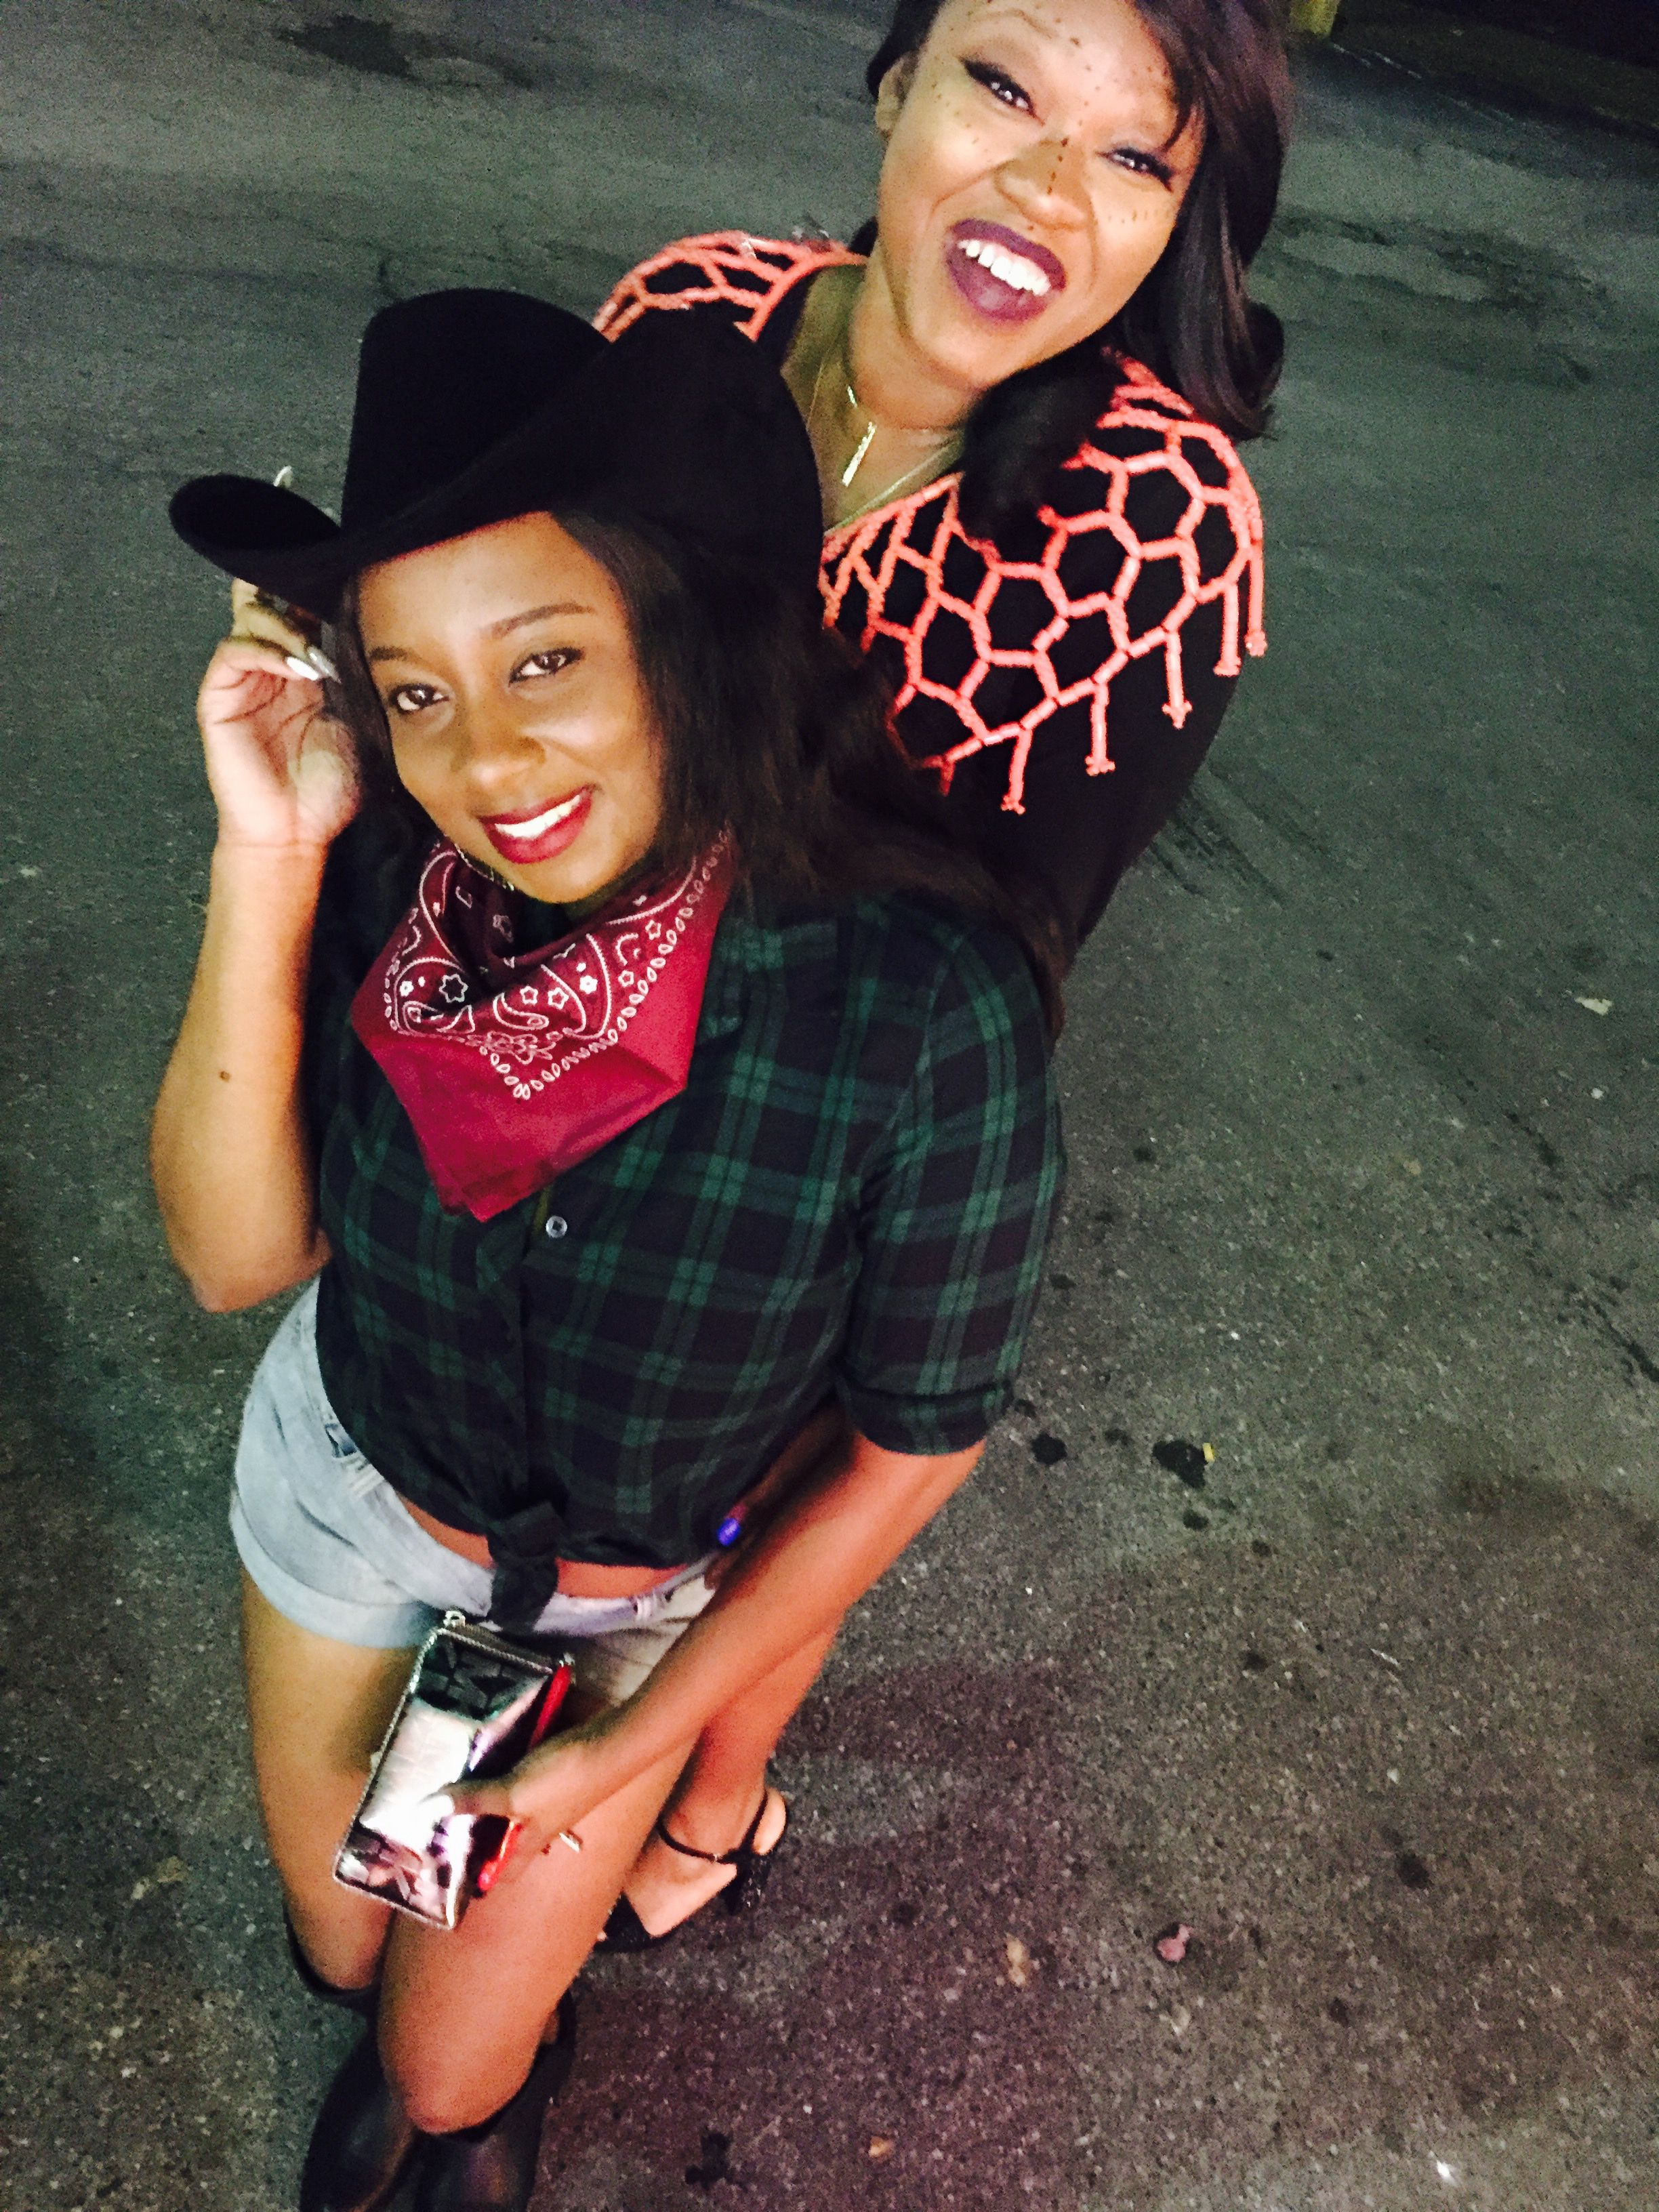 Girls just want to have fun! Cowgirl and African Queen!!